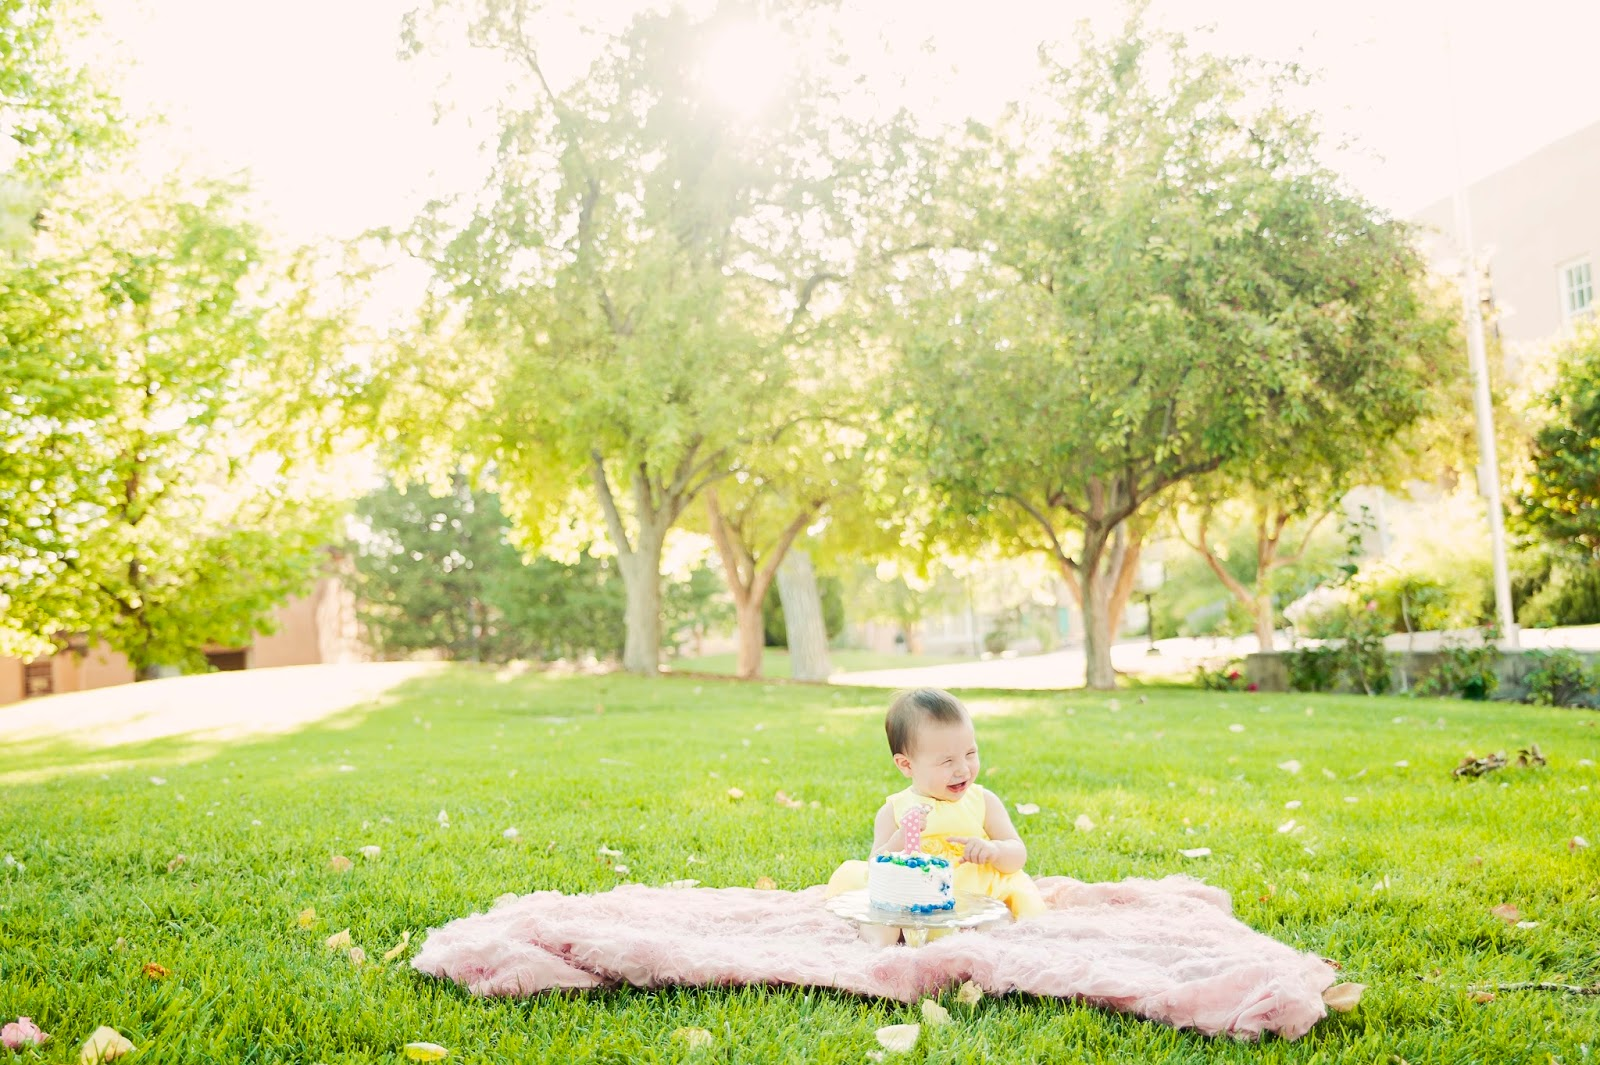 Family photography, albuquerque family photography, albuquerque family photos, family photography locations, UNM photoshoot, cake smash albuquerque, first birthday photos, cake smash photography, cake smash albuquerque